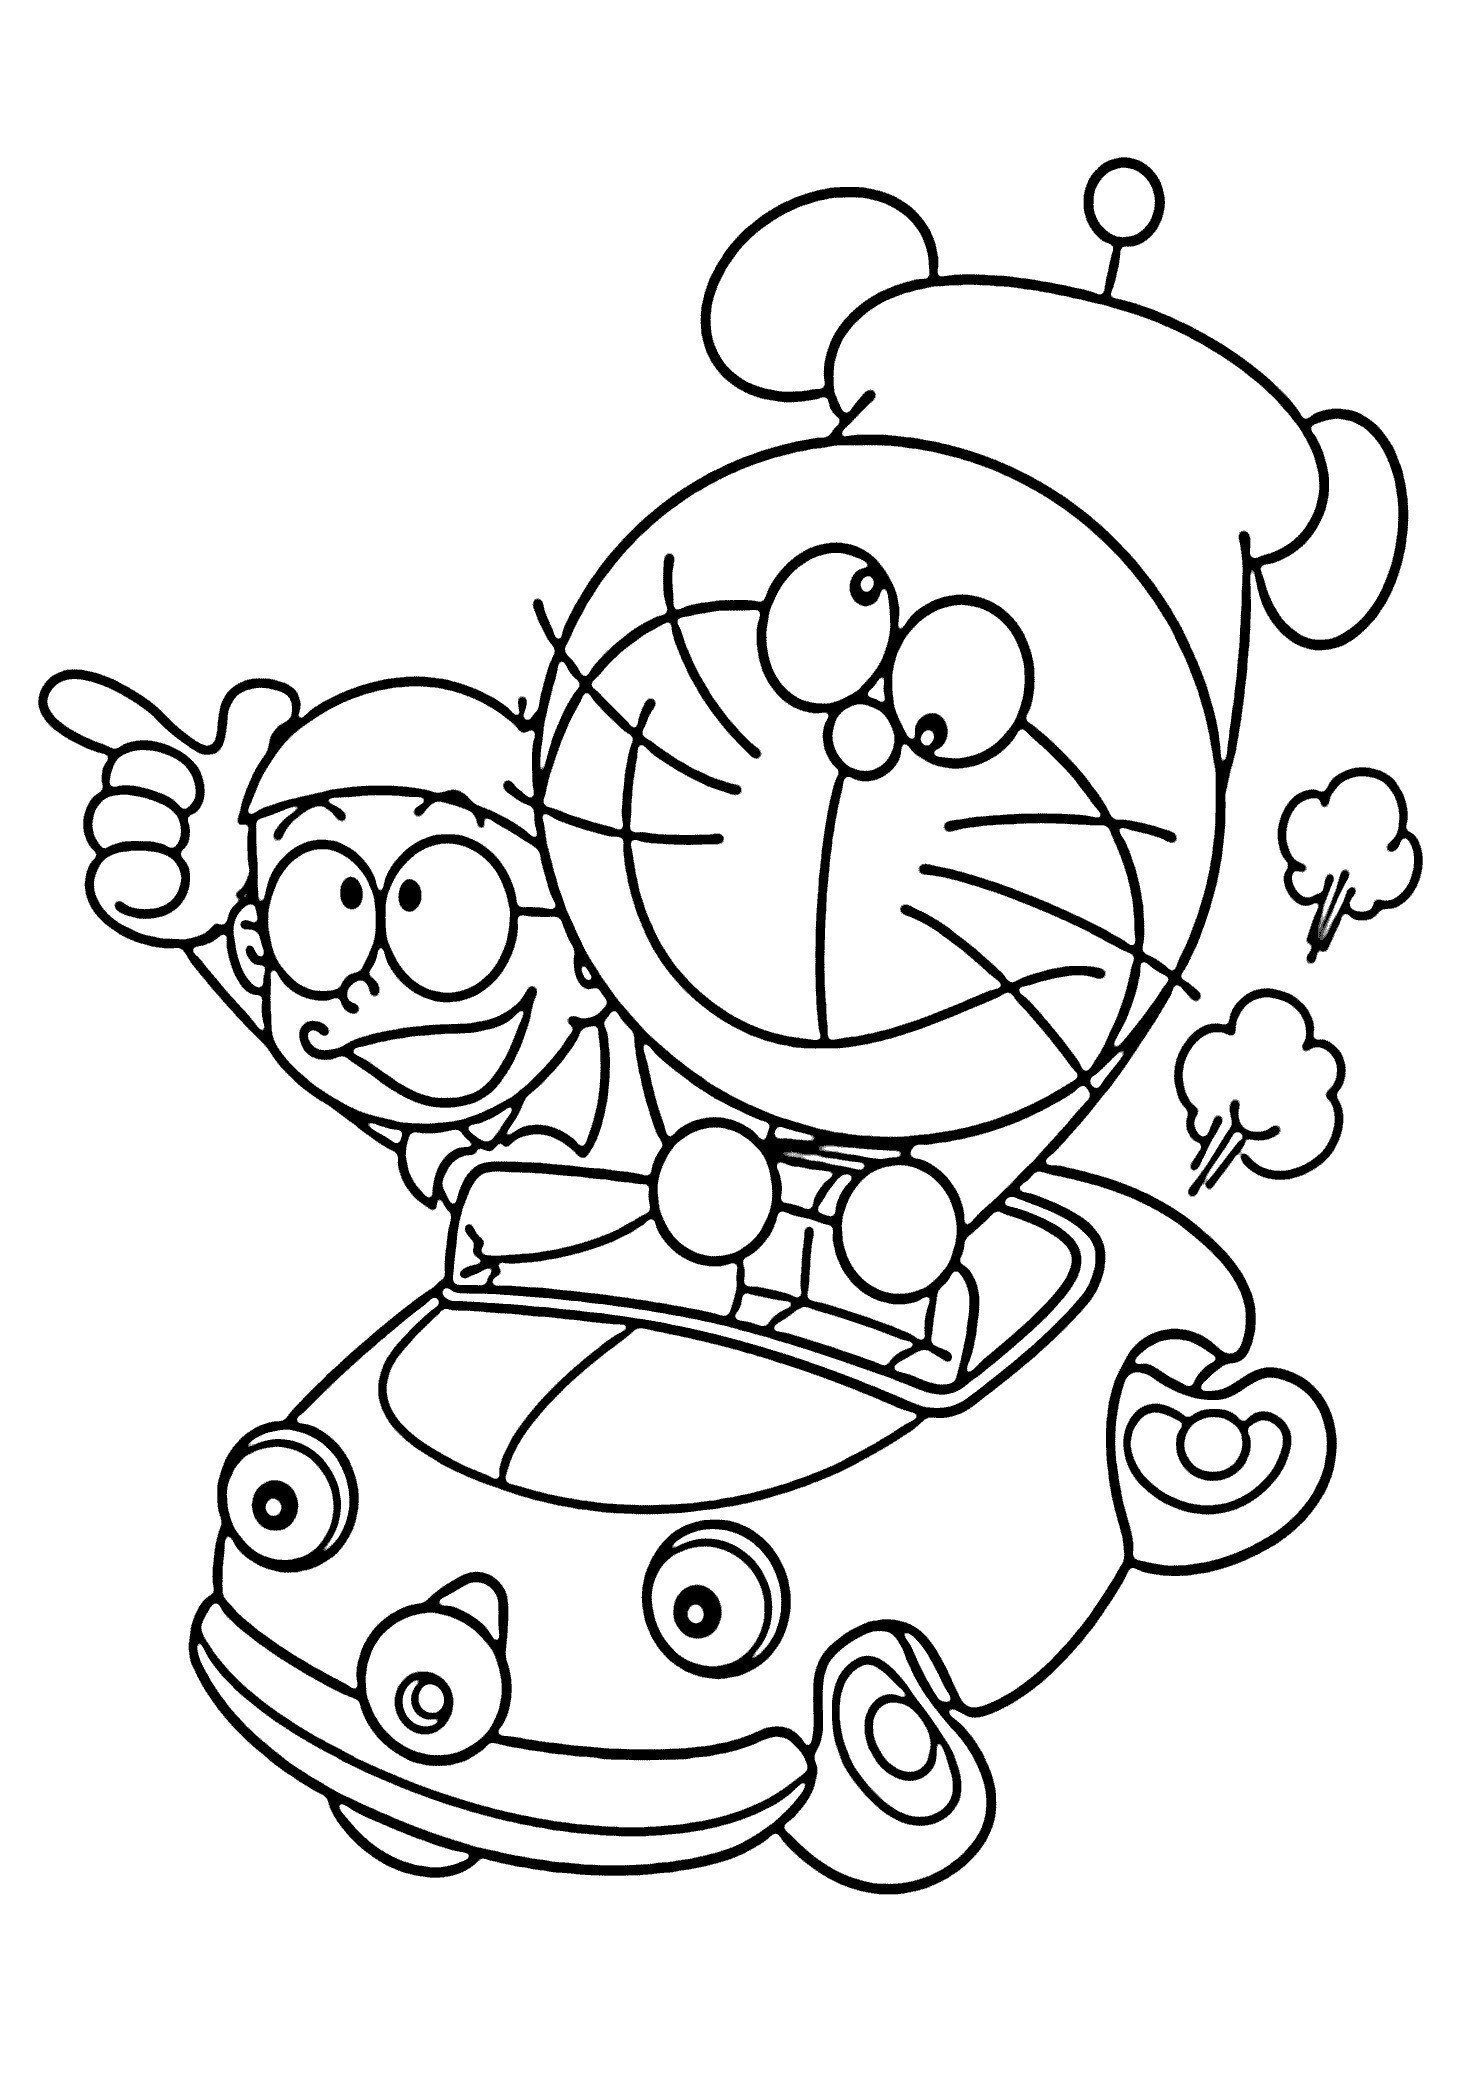 Christmas Reindeer Coloring Pages Printable With Me